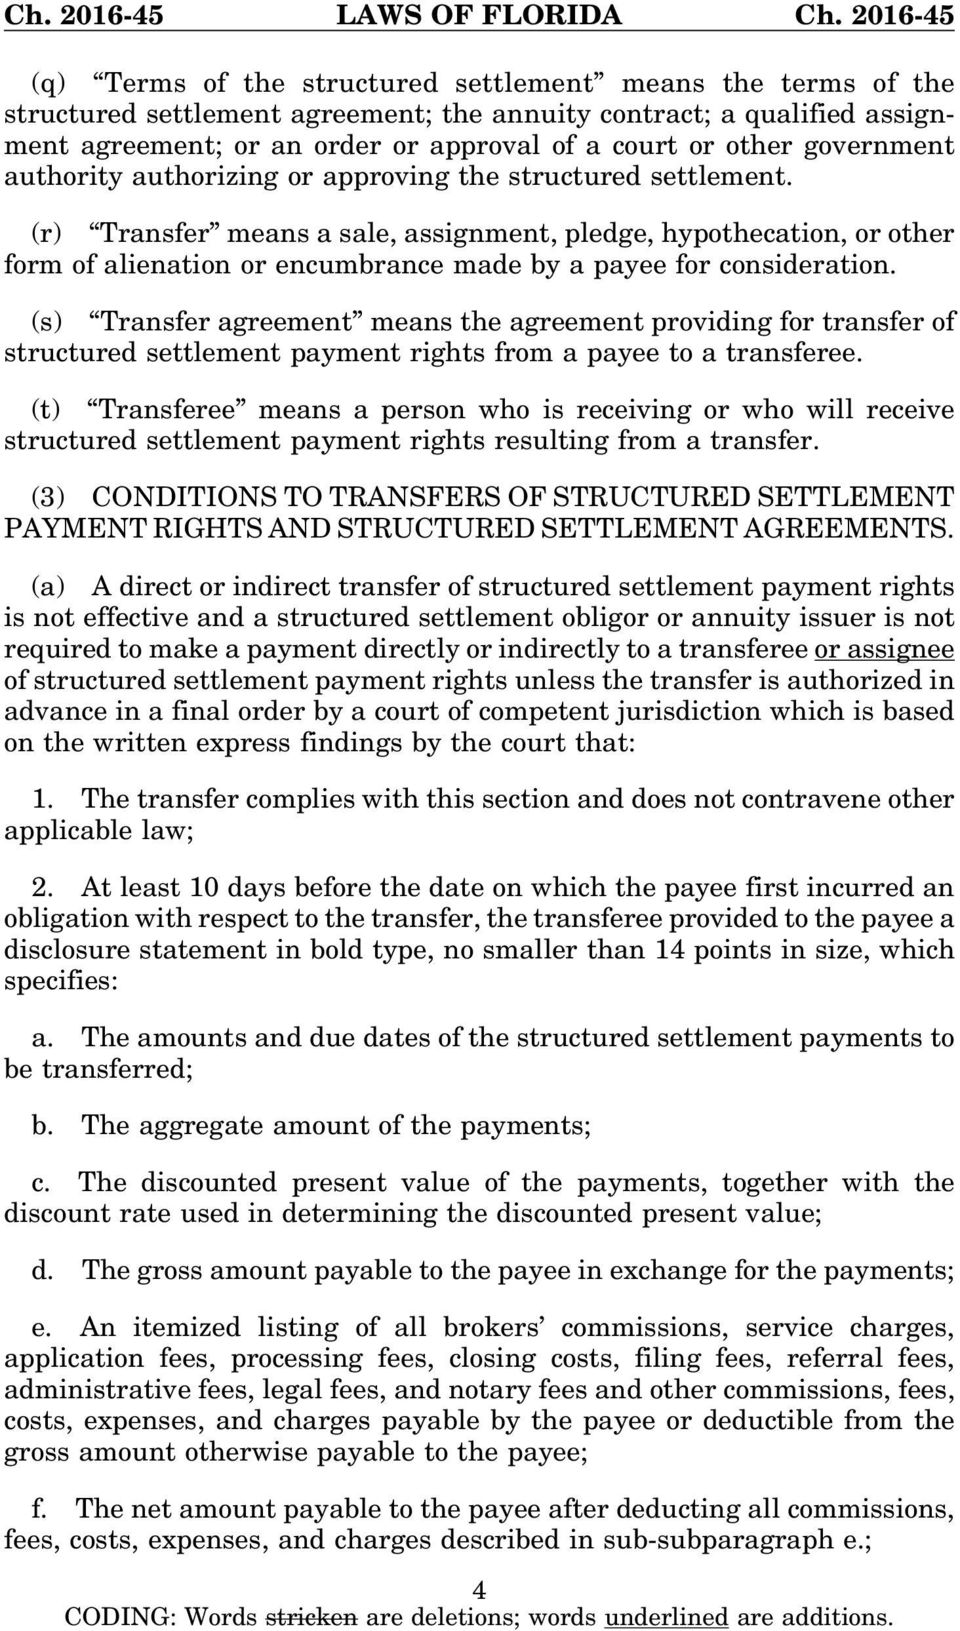 (r) Transfer means a sale, assignment, pledge, hypothecation, or other form of alienation or encumbrance made by a payee for consideration.